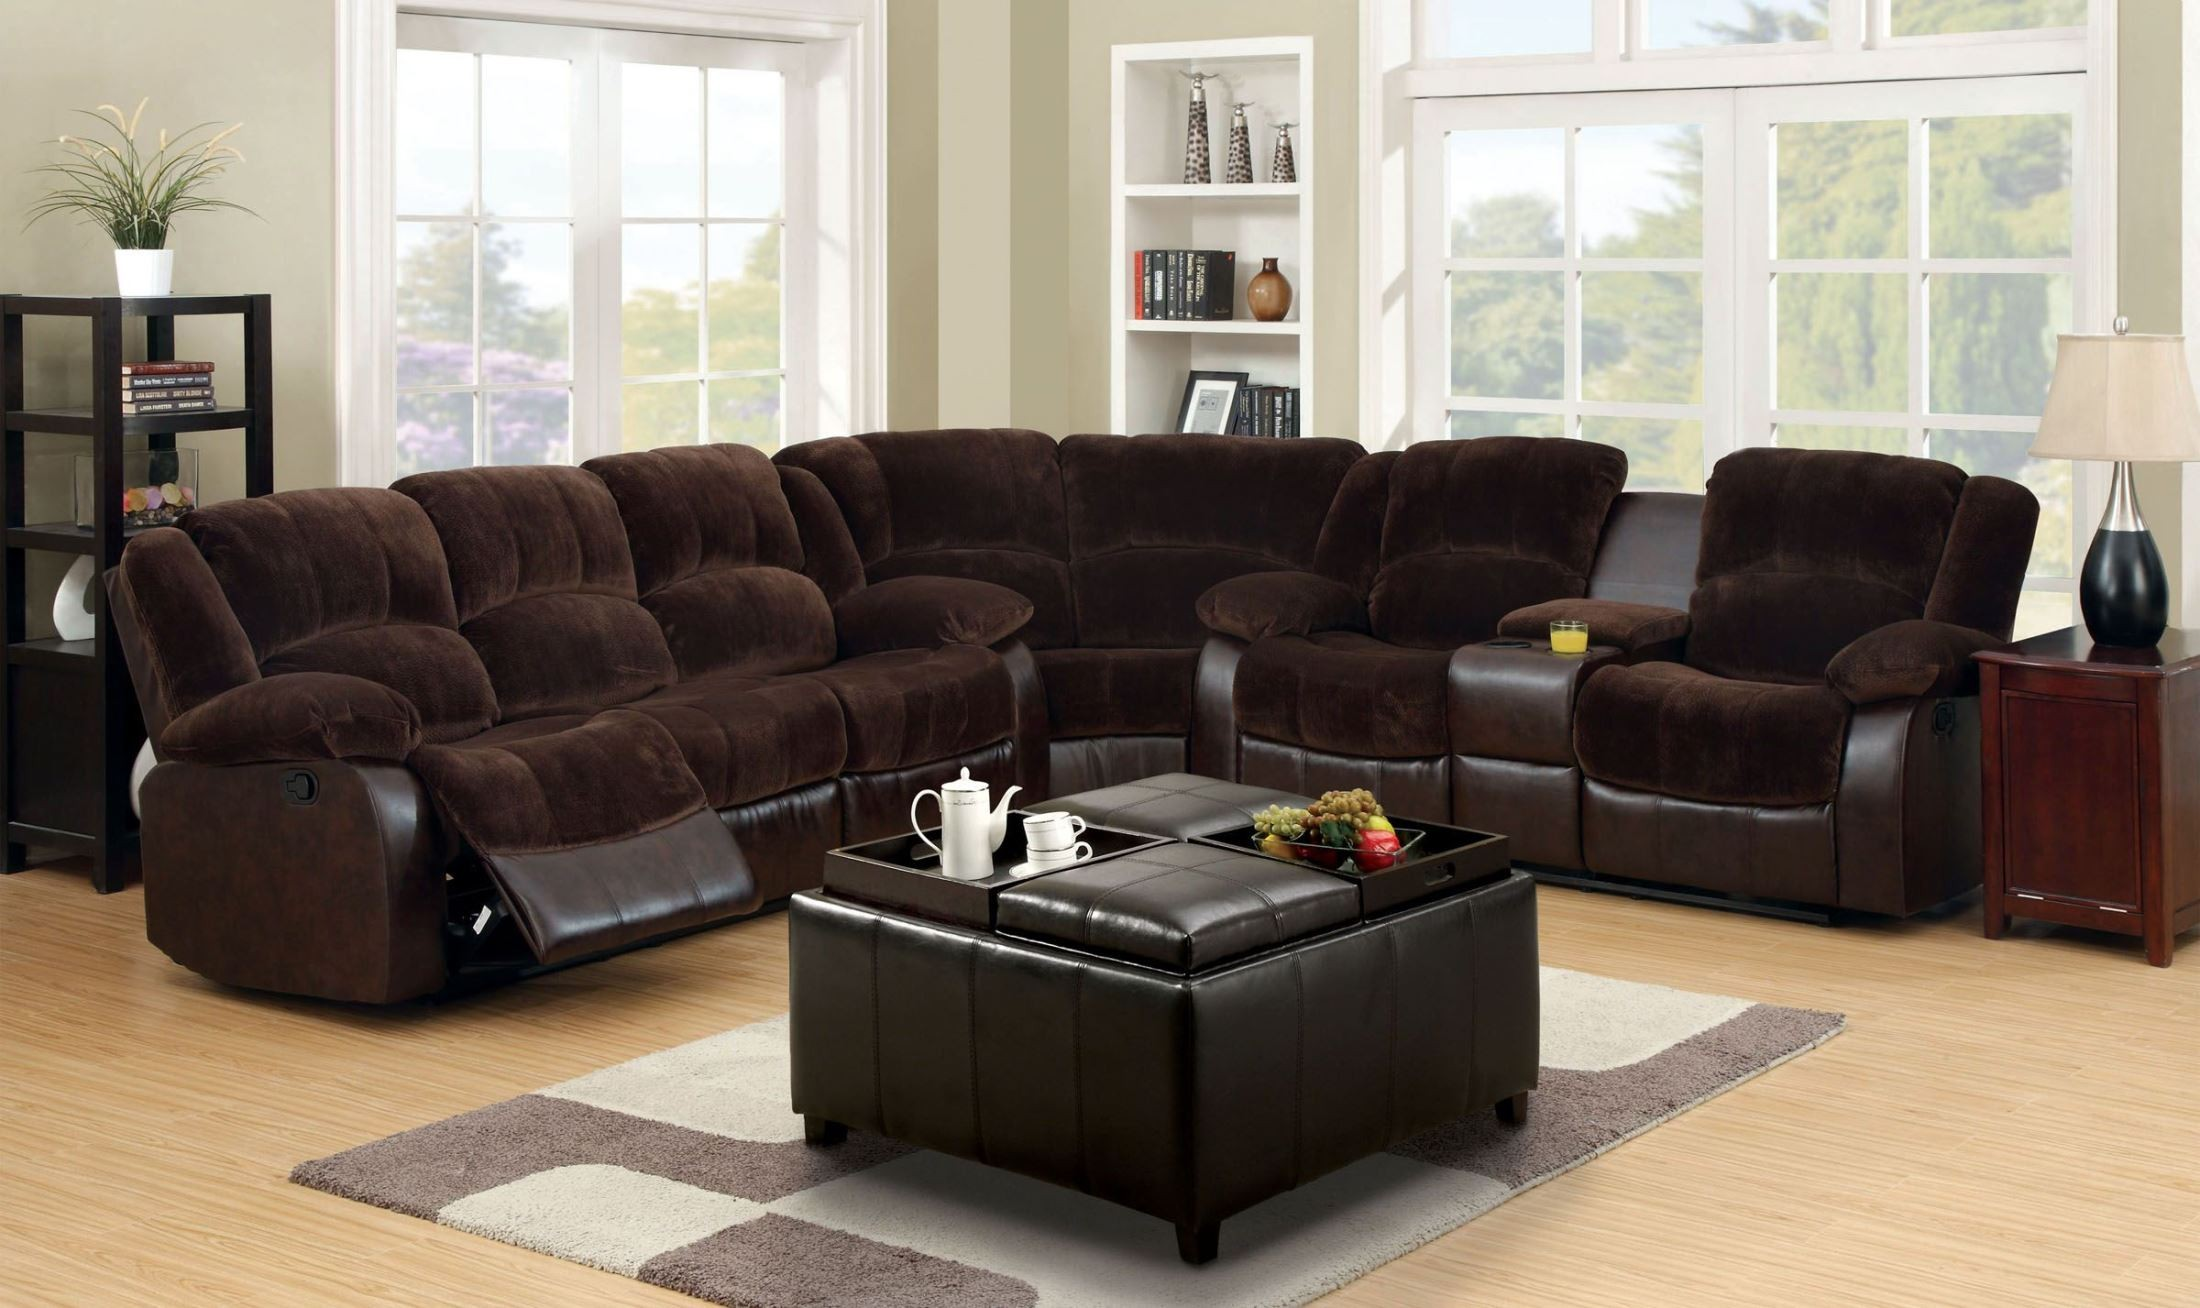 Winchester Brown Reclining Sectional From Furniture Of America Cm6556cp Section Ct Coleman